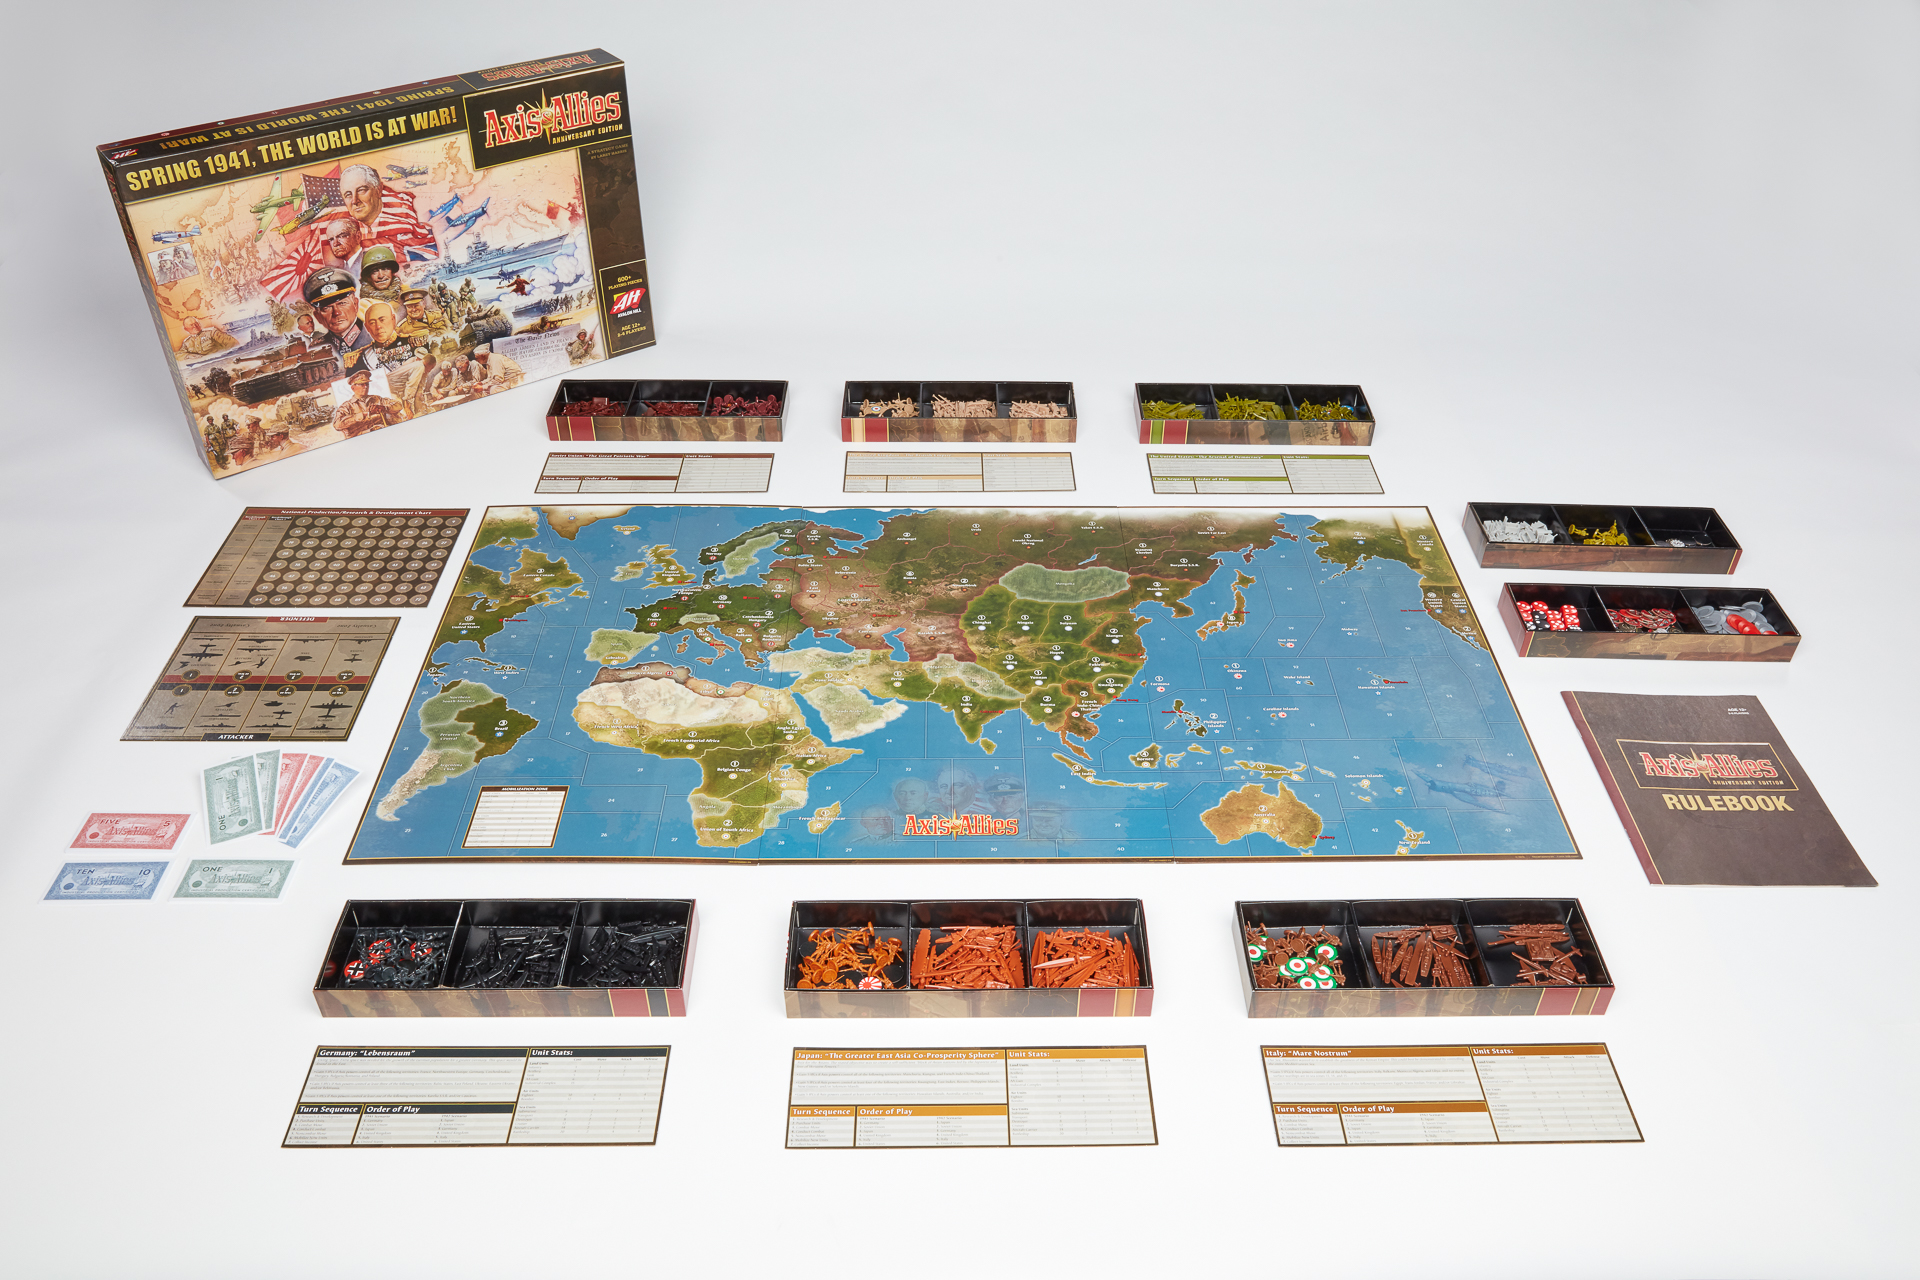 axis-allies-anniversary-4.jpg